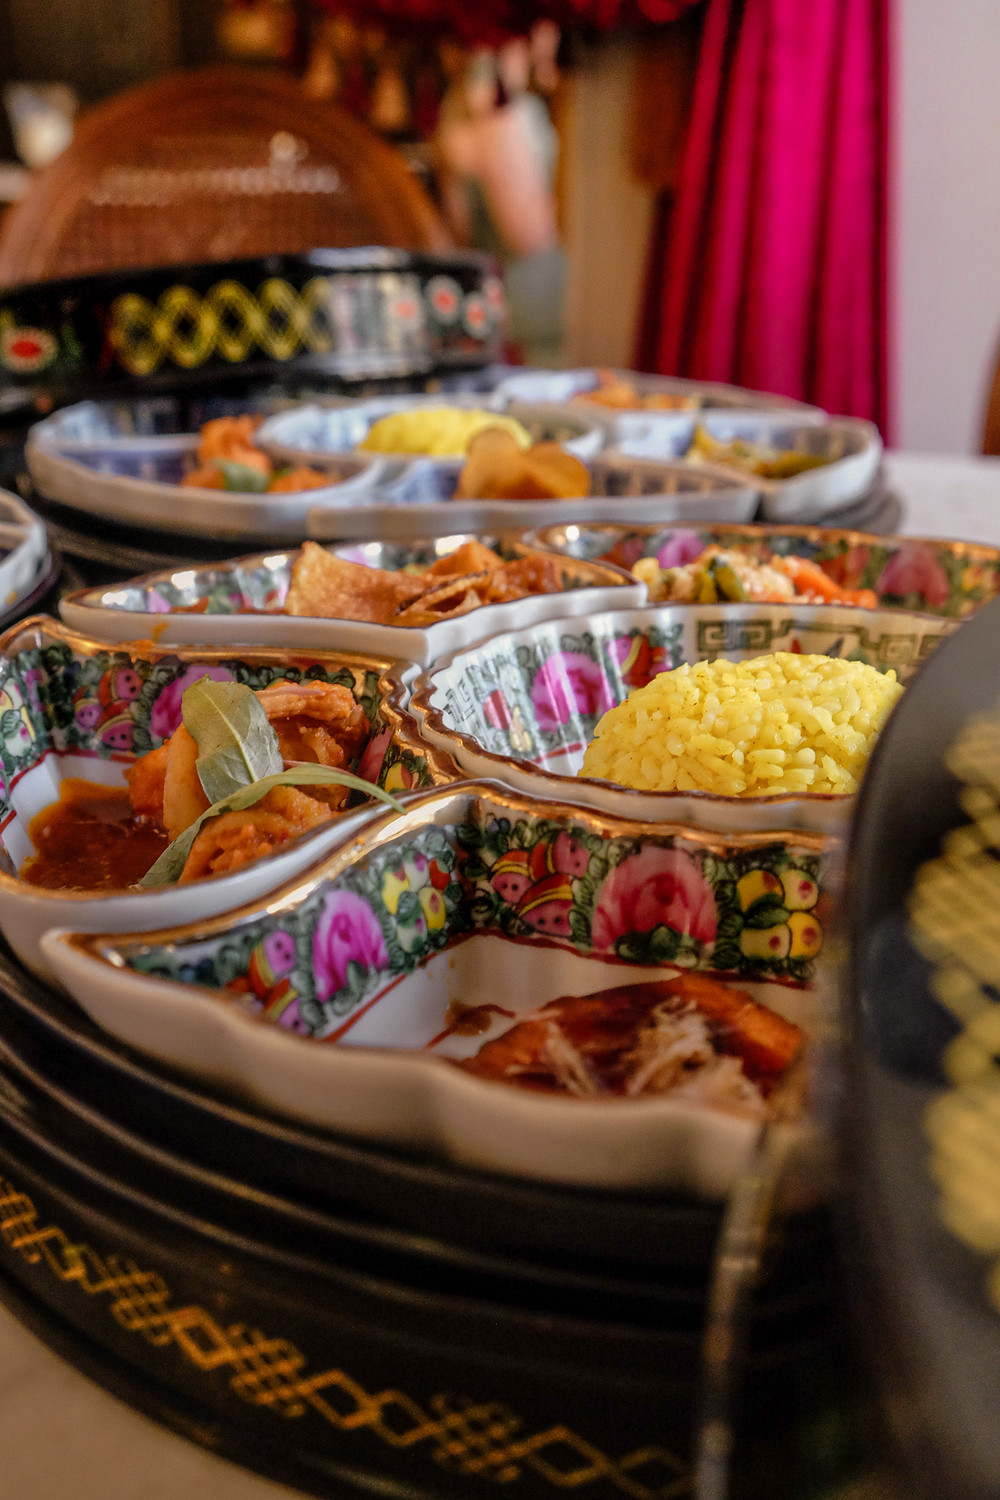 Kebaya Dining Room Nyonya food platter, food photography by RollingBear Travels.